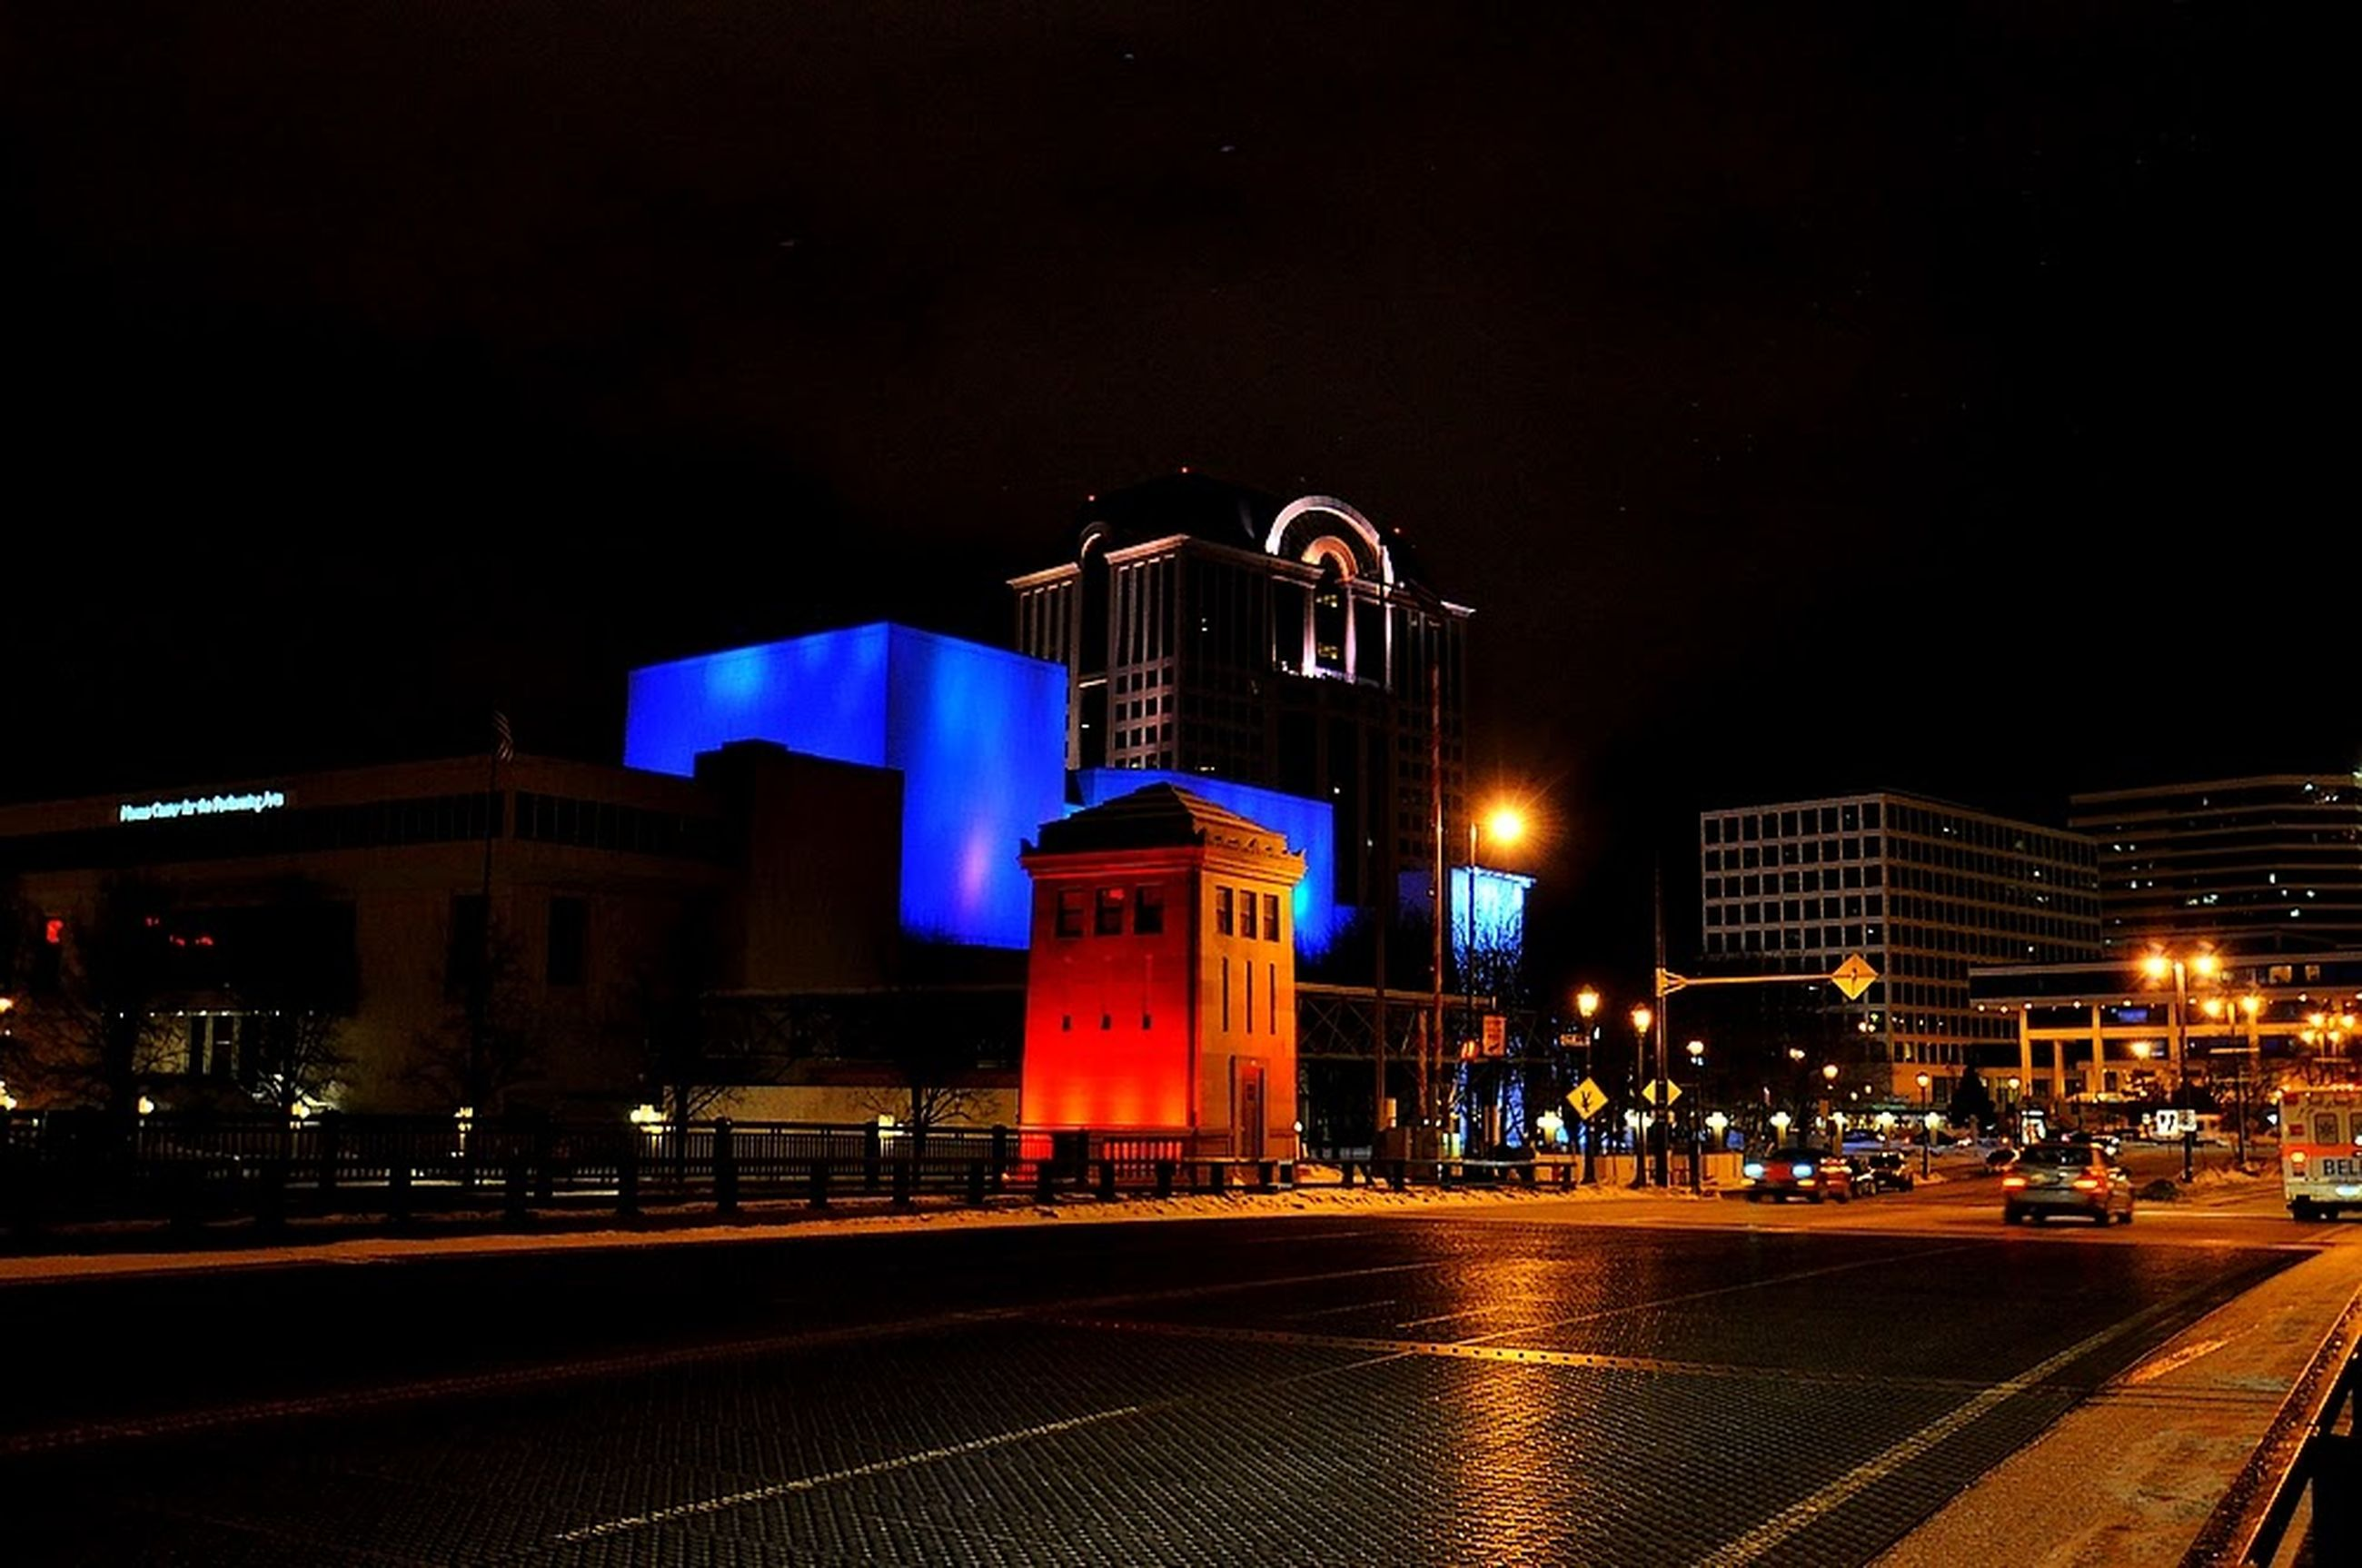 night, illuminated, building exterior, architecture, built structure, sky, street light, outdoors, city, no people